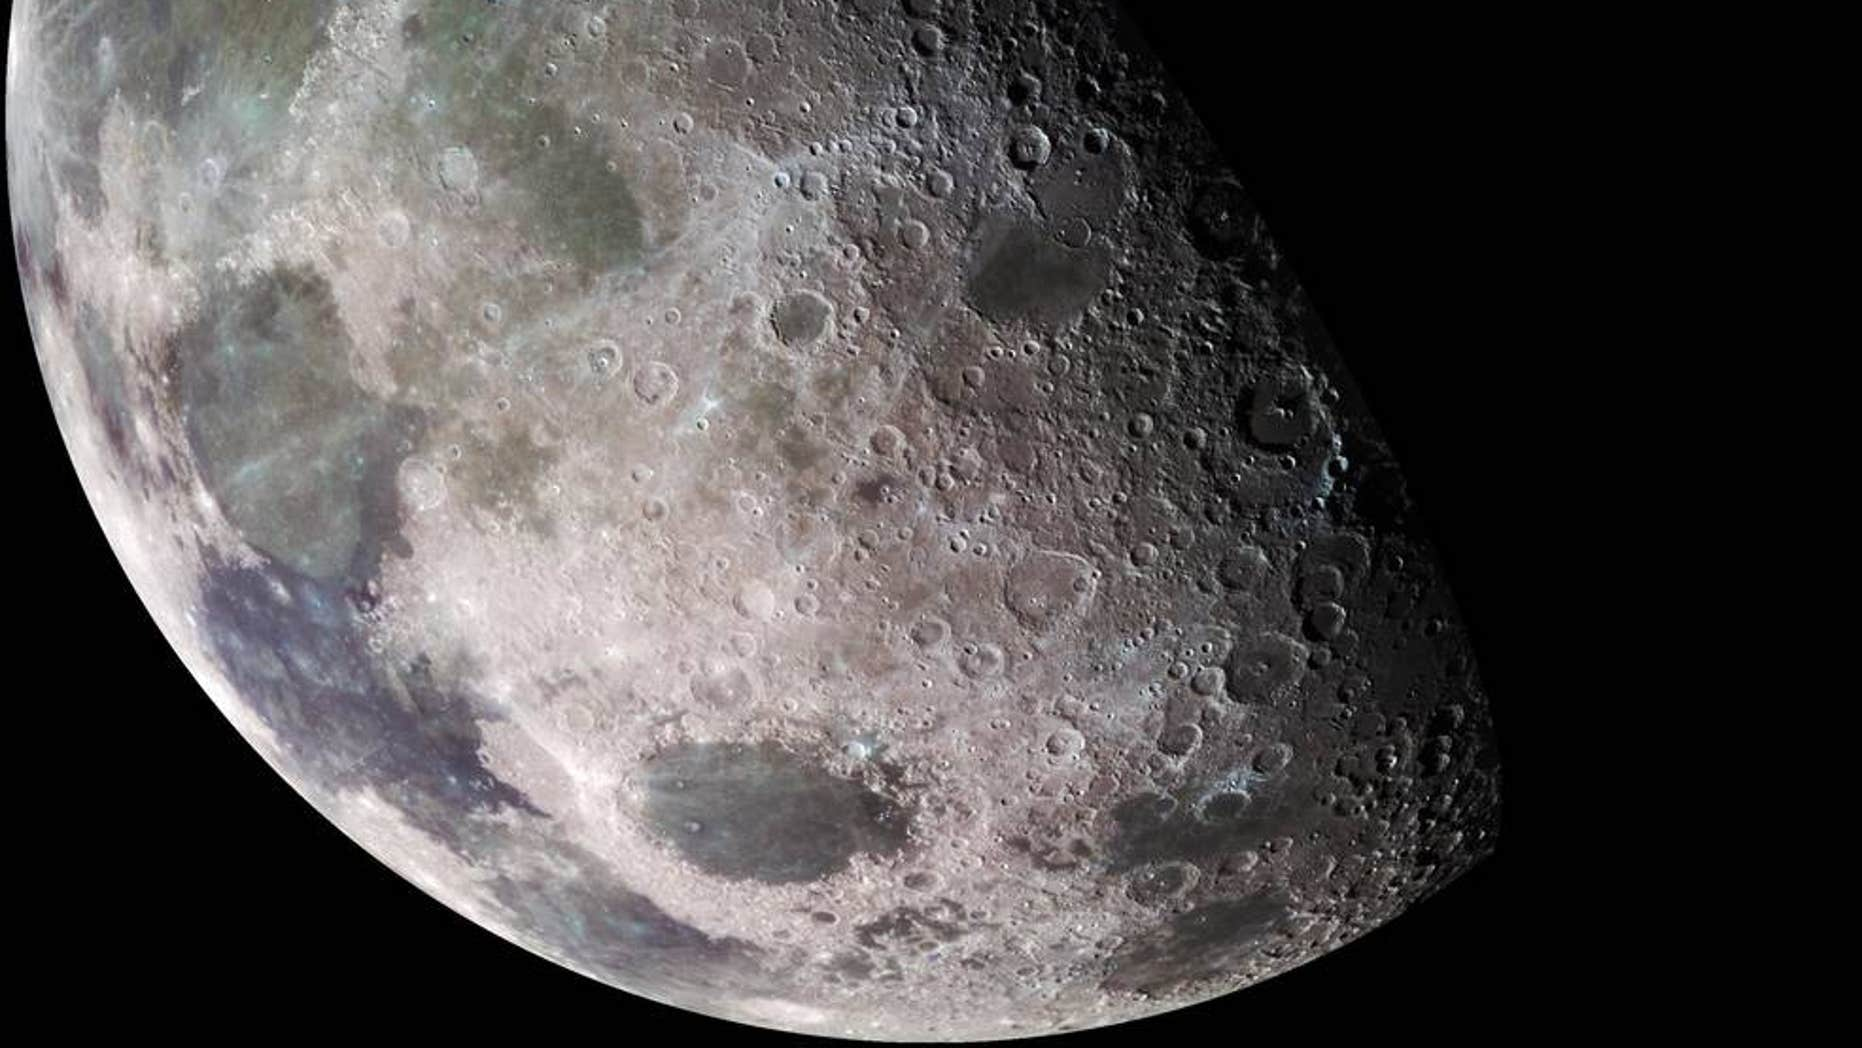 Private enterprise will help NASA return to the moon